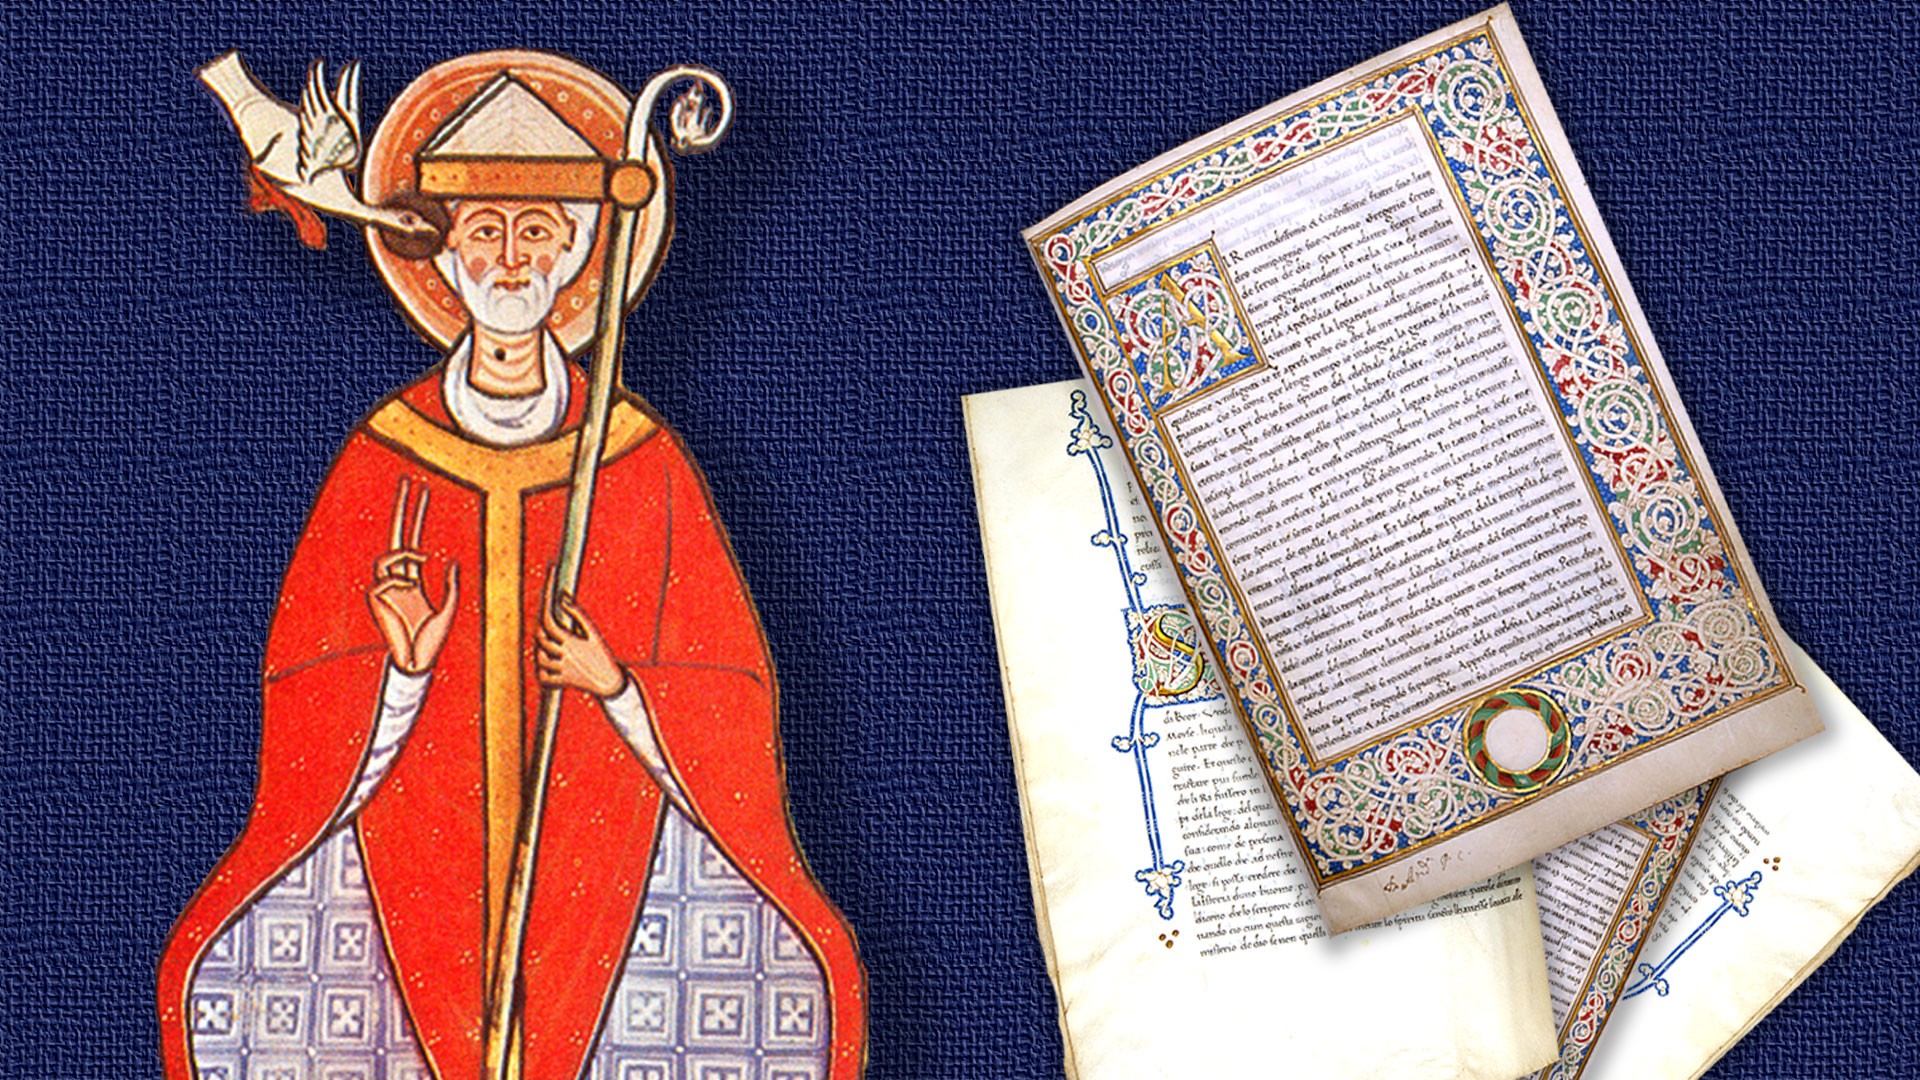 gregory the great and his writings